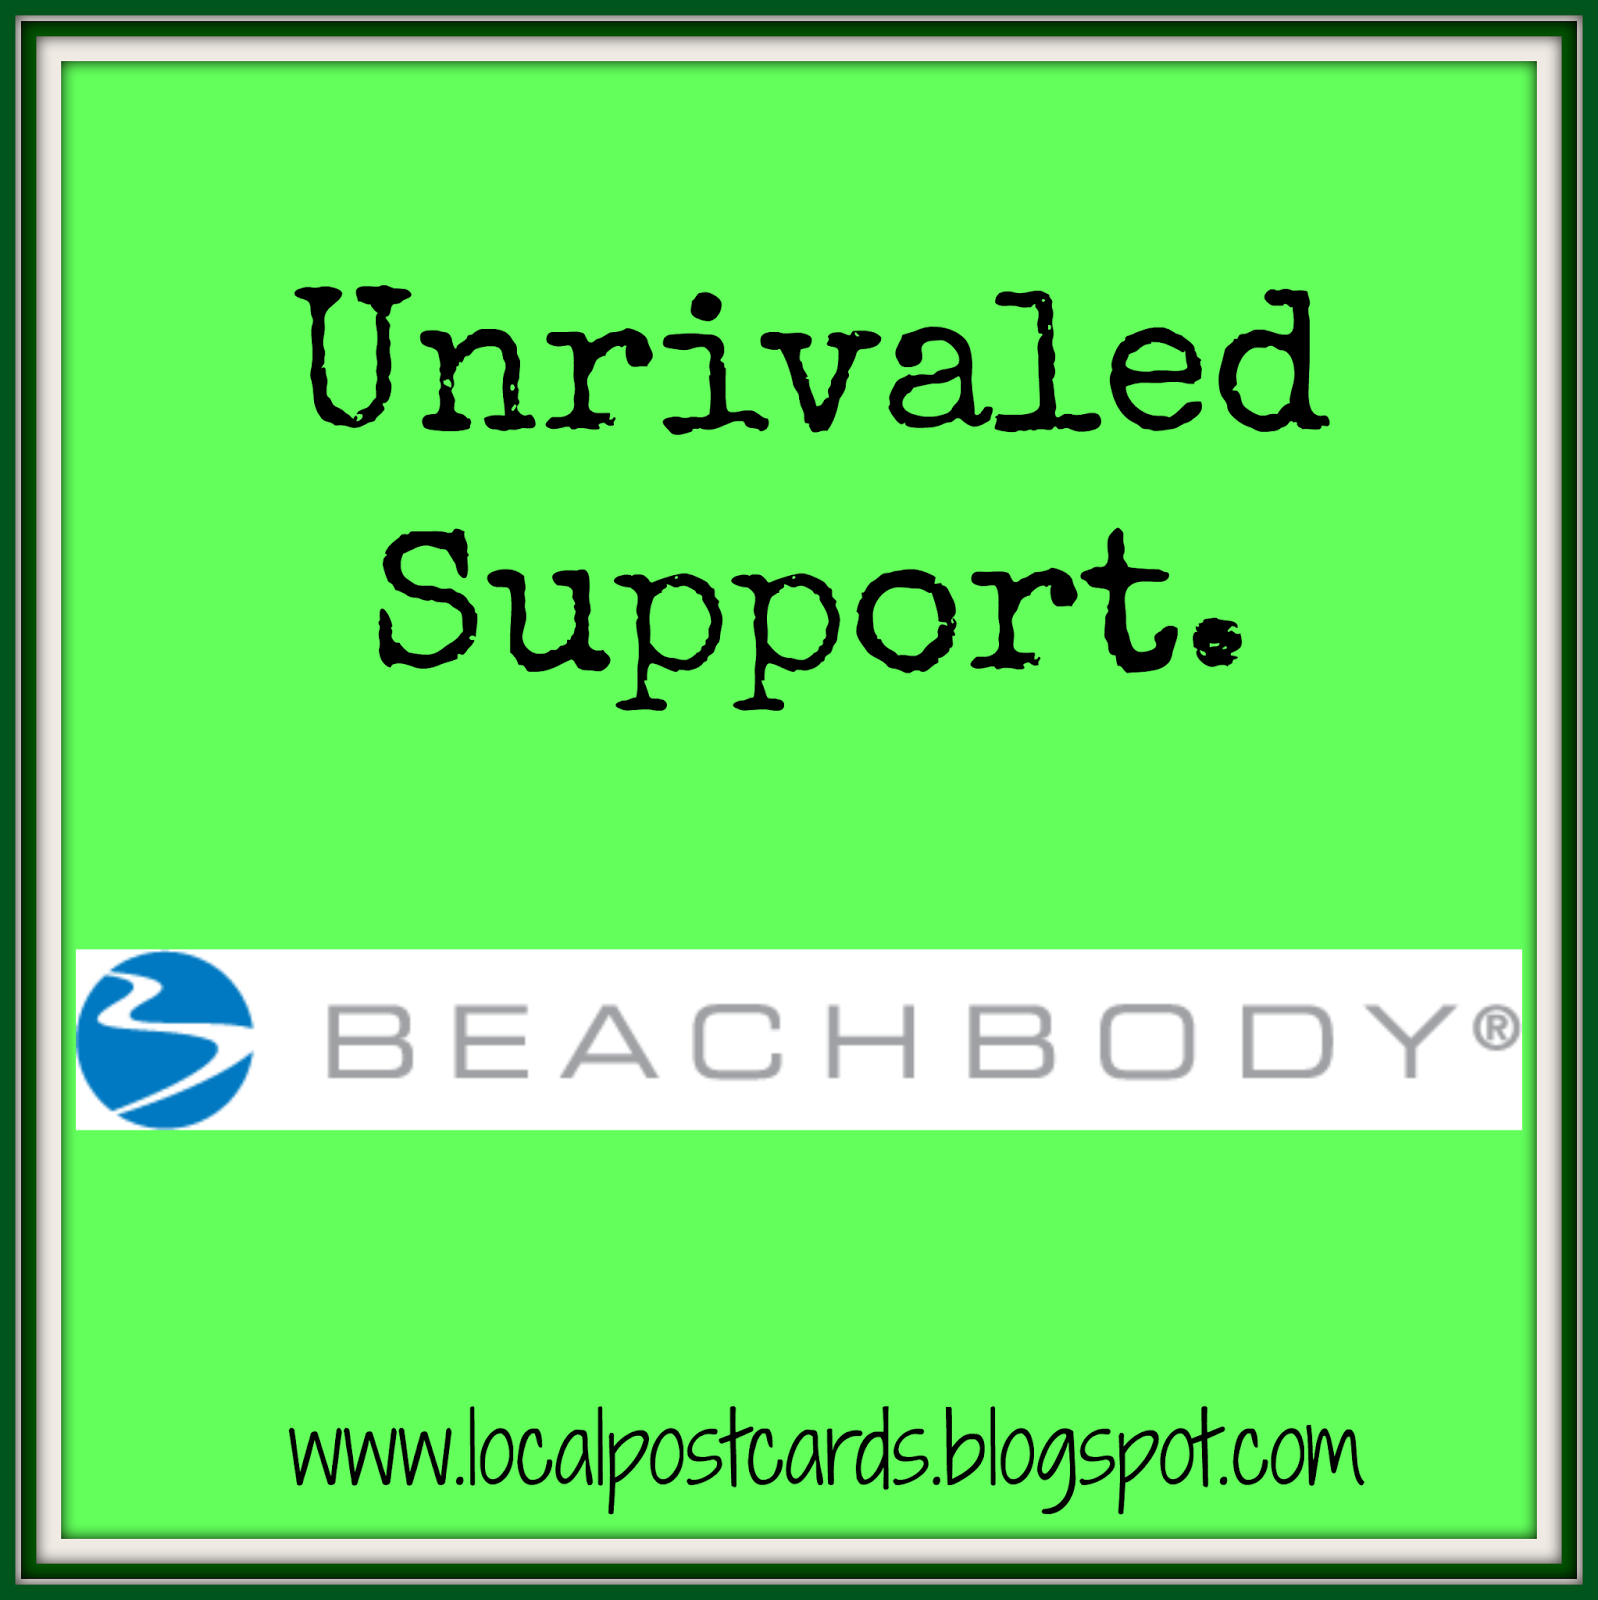 Beachbody Support